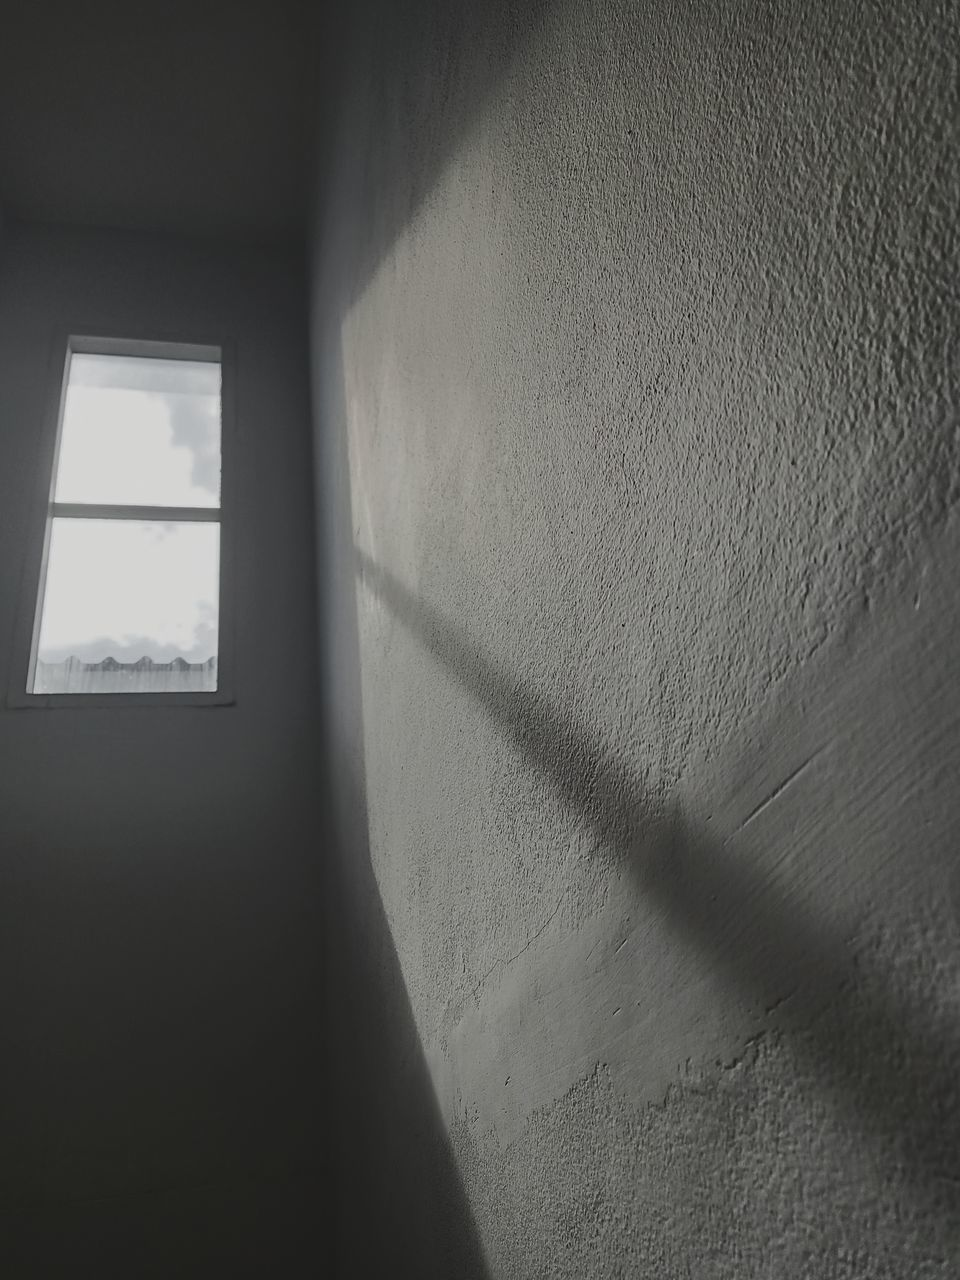 shadow, wall - building feature, sunlight, built structure, day, window, architecture, wall, nature, indoors, no people, focus on shadow, close-up, textured, building, window frame